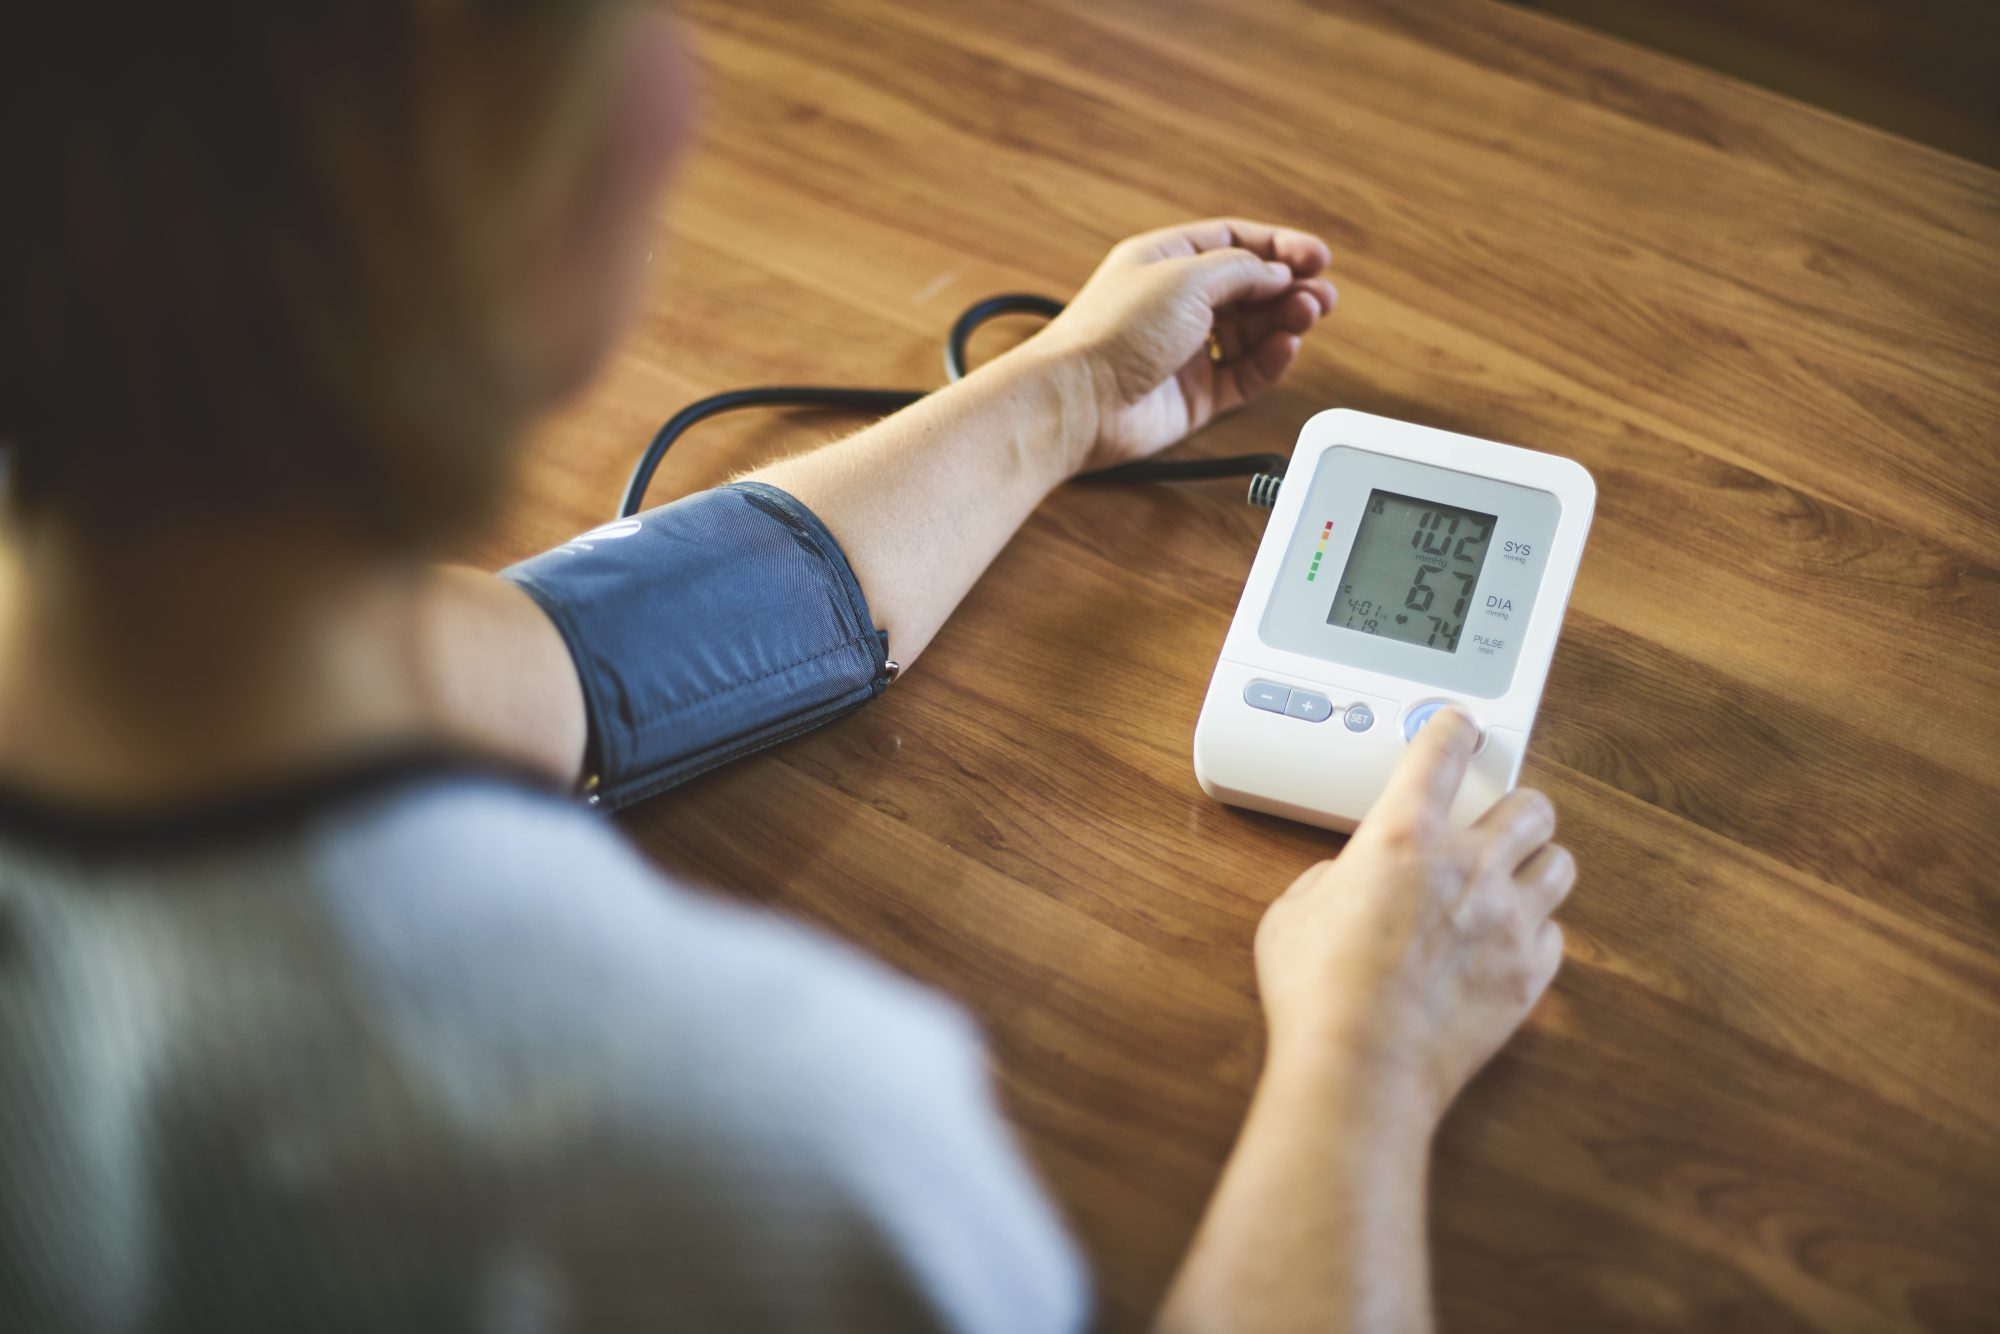 blood pressure readying on home test